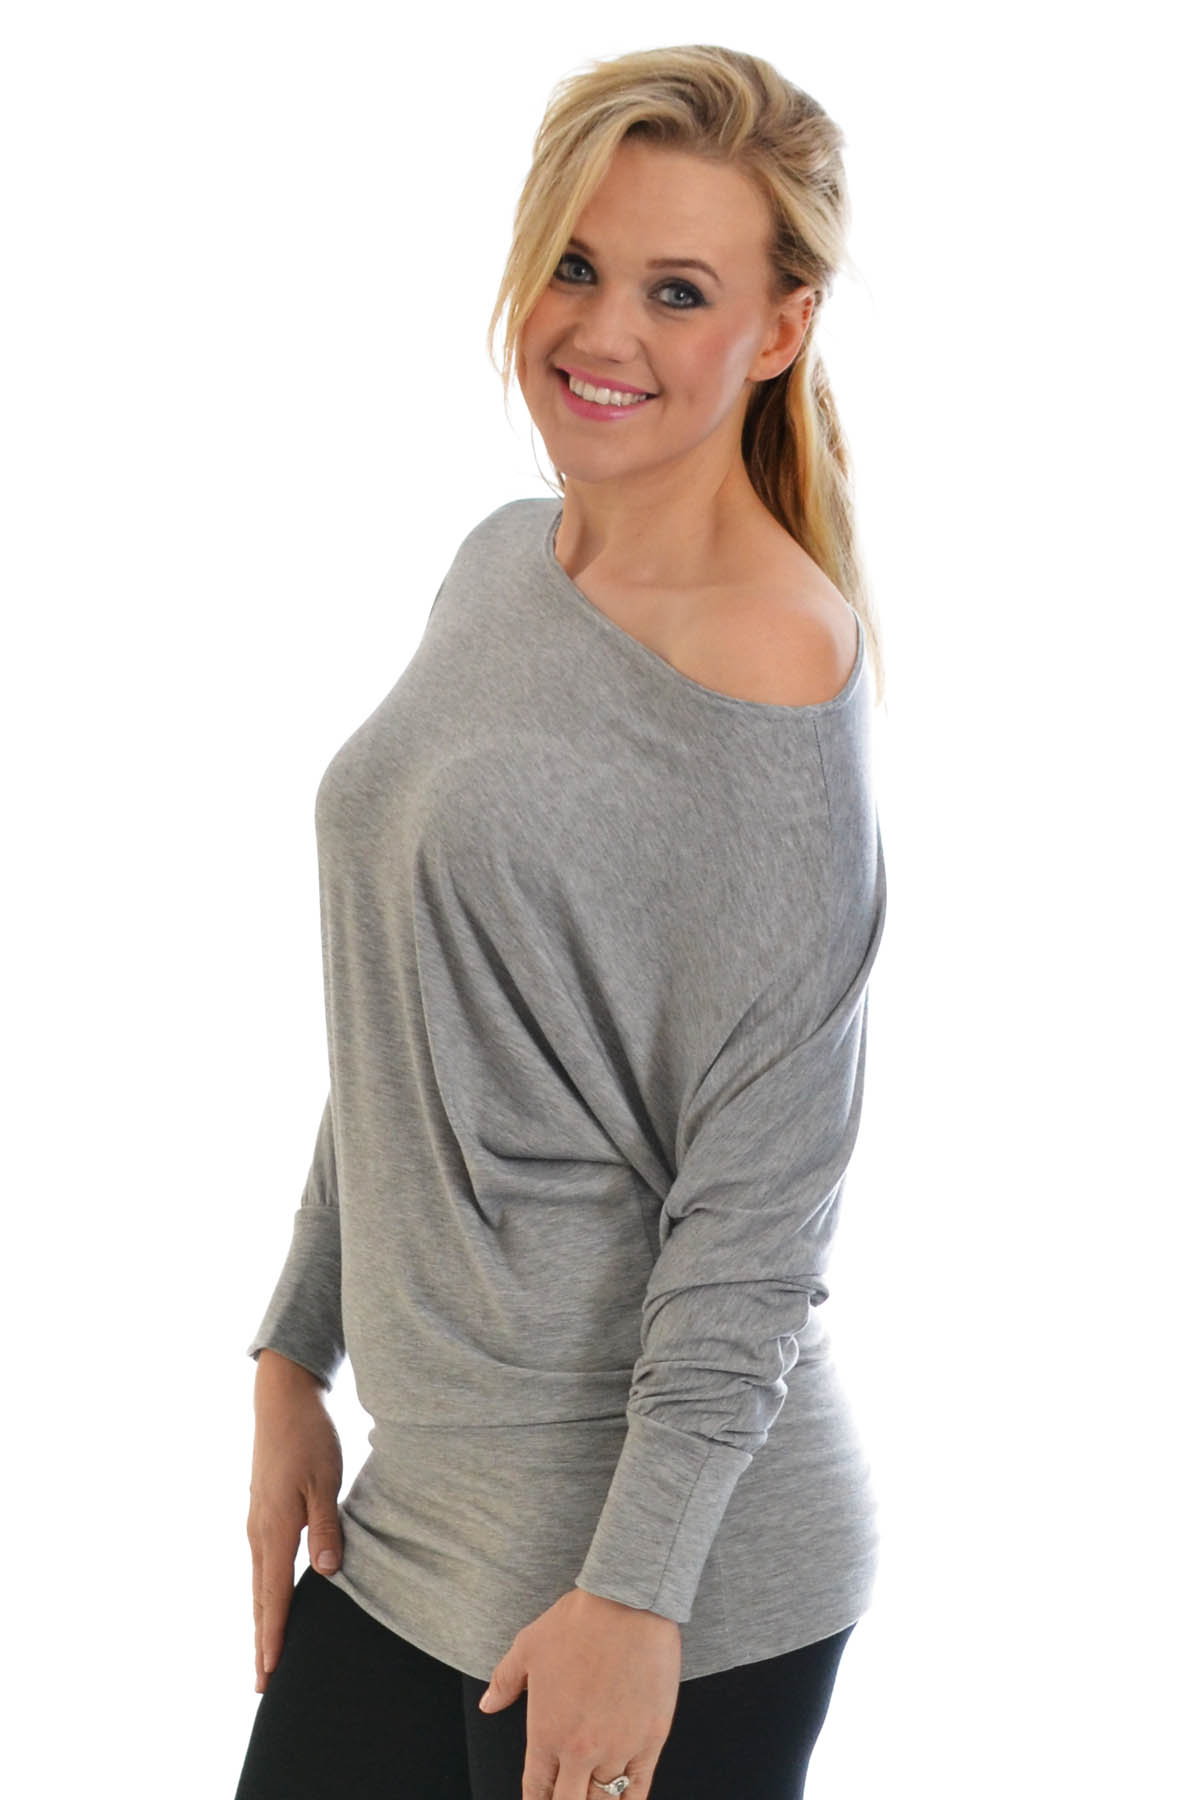 979d2e234f7b40 New Ladies Top Womens Batwing Slouch Boat Neck Off Shoulder Plus ...